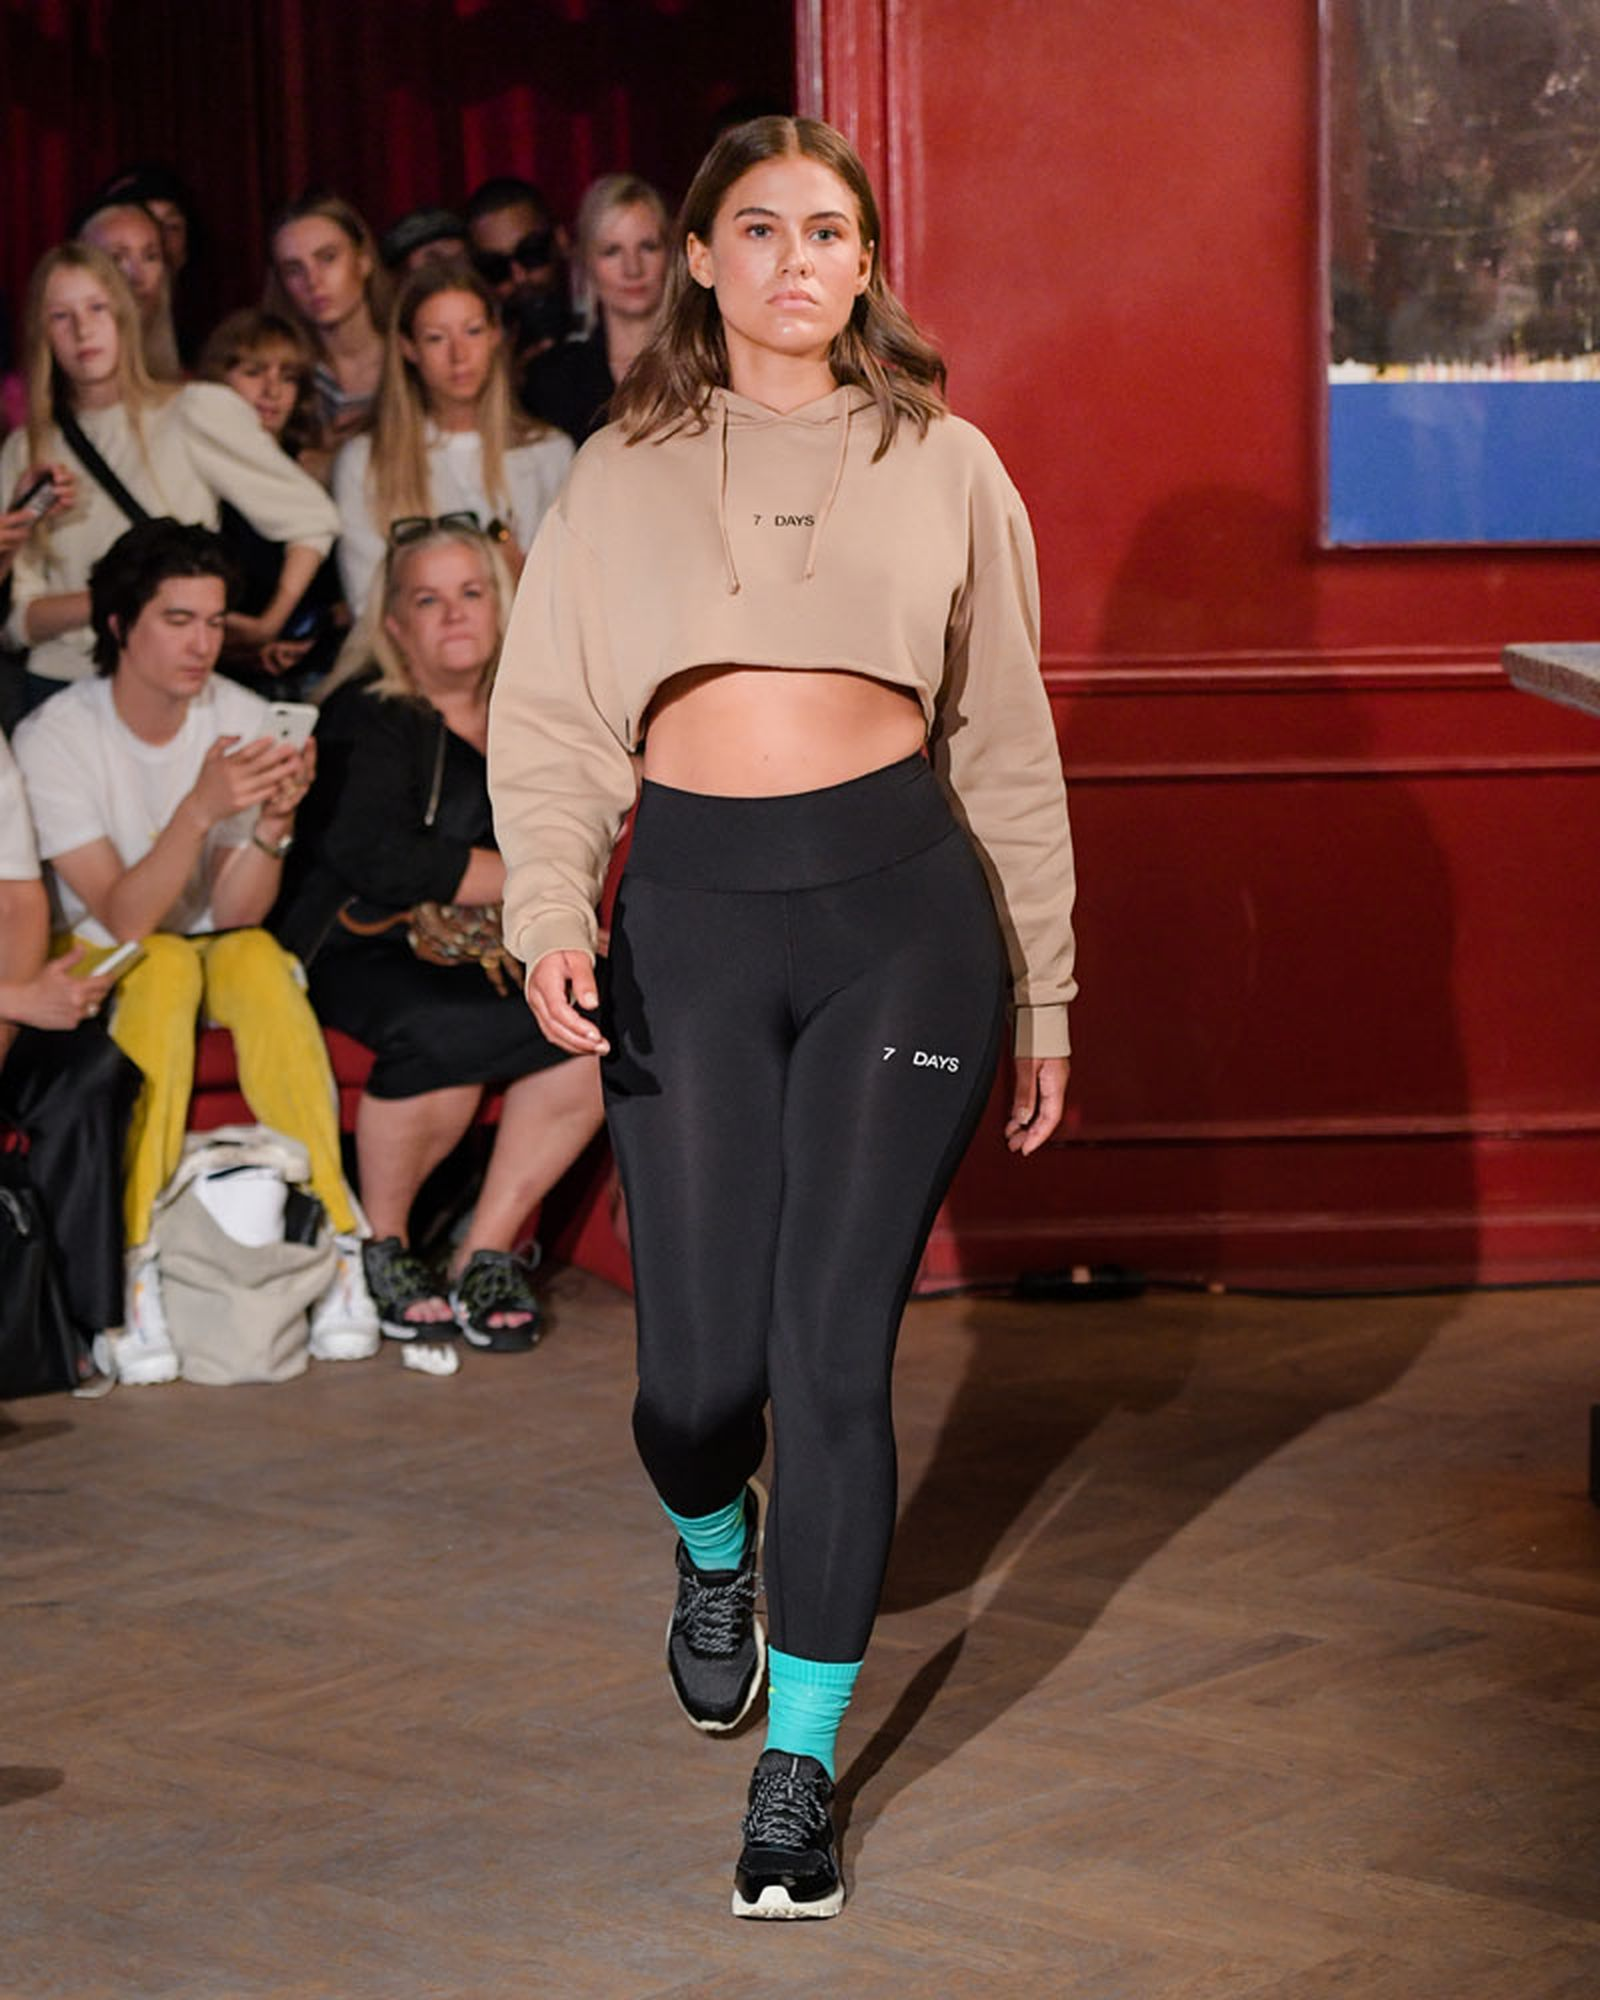 copenhagen fashion week 2019 recap 7 days 7 Days 015 7days Sunflower holzweiler